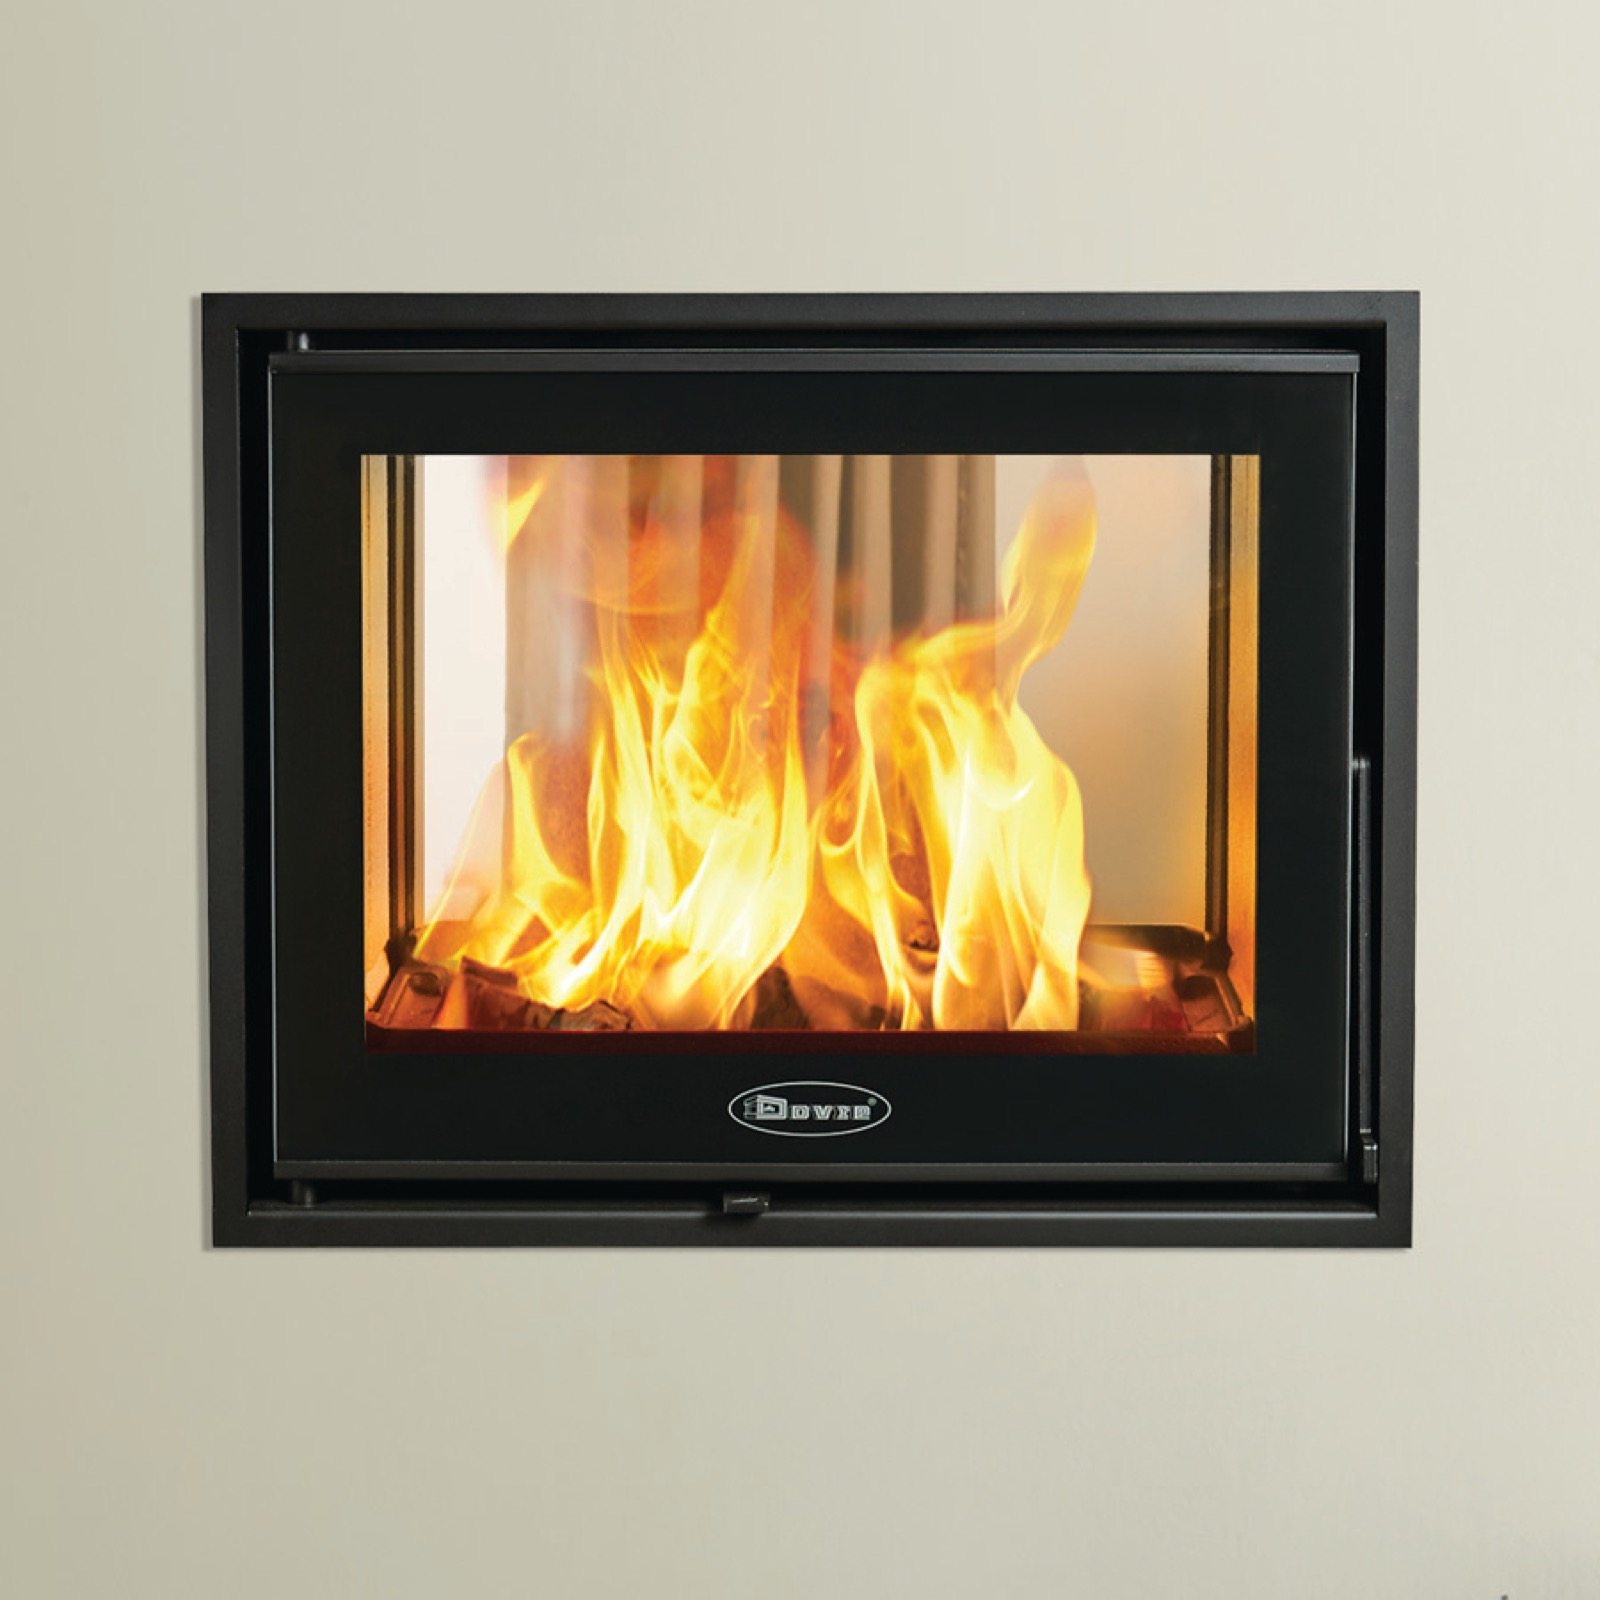 Dovre Zen 102 Double Sided Wood Burning Inset Cette Stove Simply Stoves